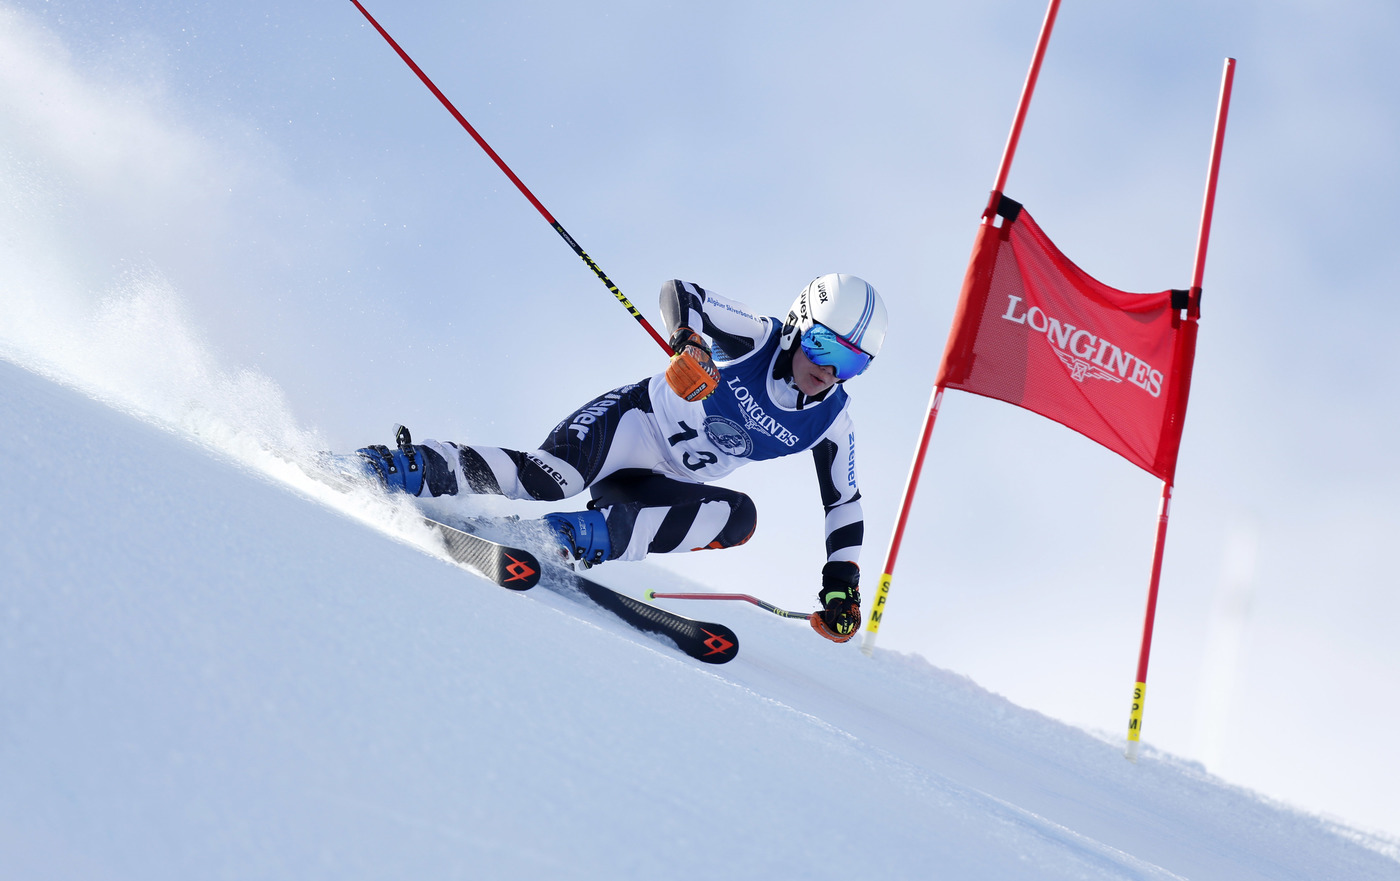 Longines Alpine Skiing Event: LONGINES FUTURE SKI CHAMPIONS - THE BEST YOUNG FEMALE SKIERS 7